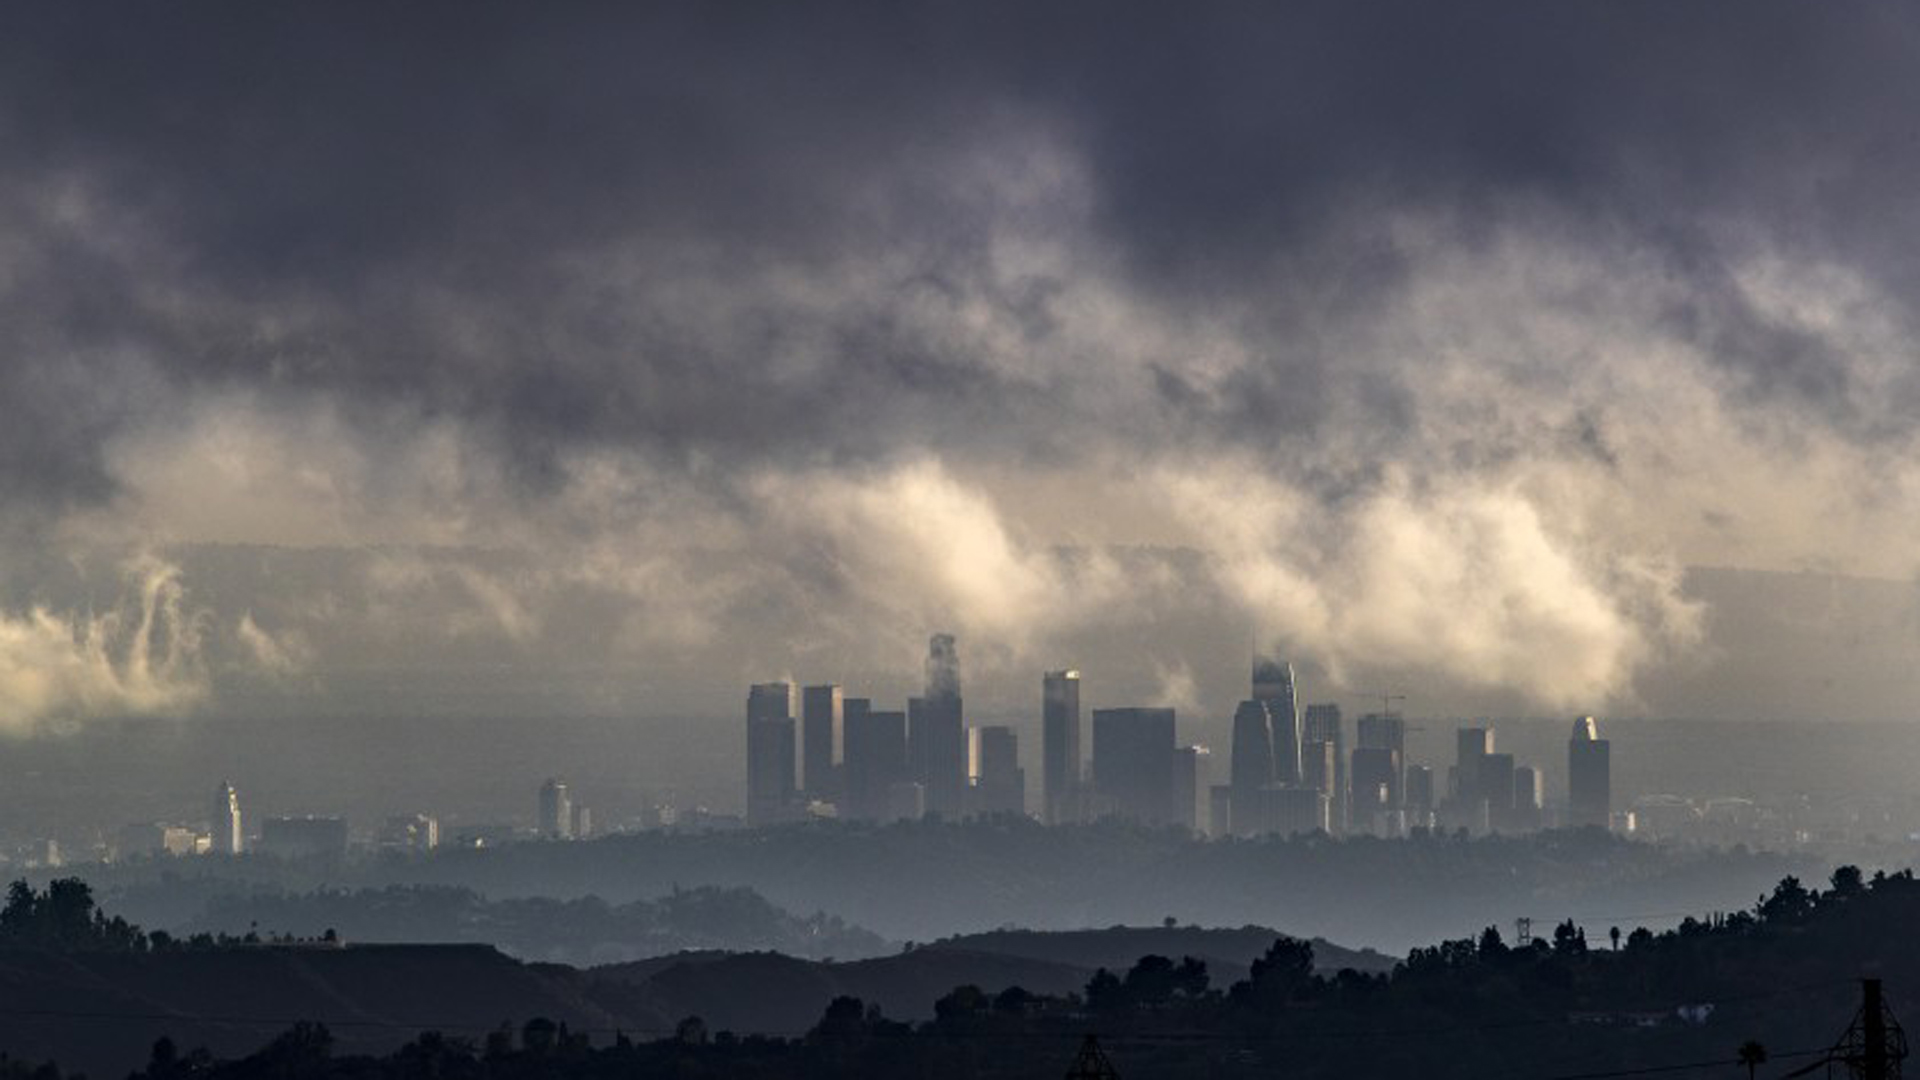 Clouds linger over downtown L.A. skyscrapers as a storm rolls through the Los Angeles basin last week. (Credit: Brian van der Brug / Los Angeles Times)